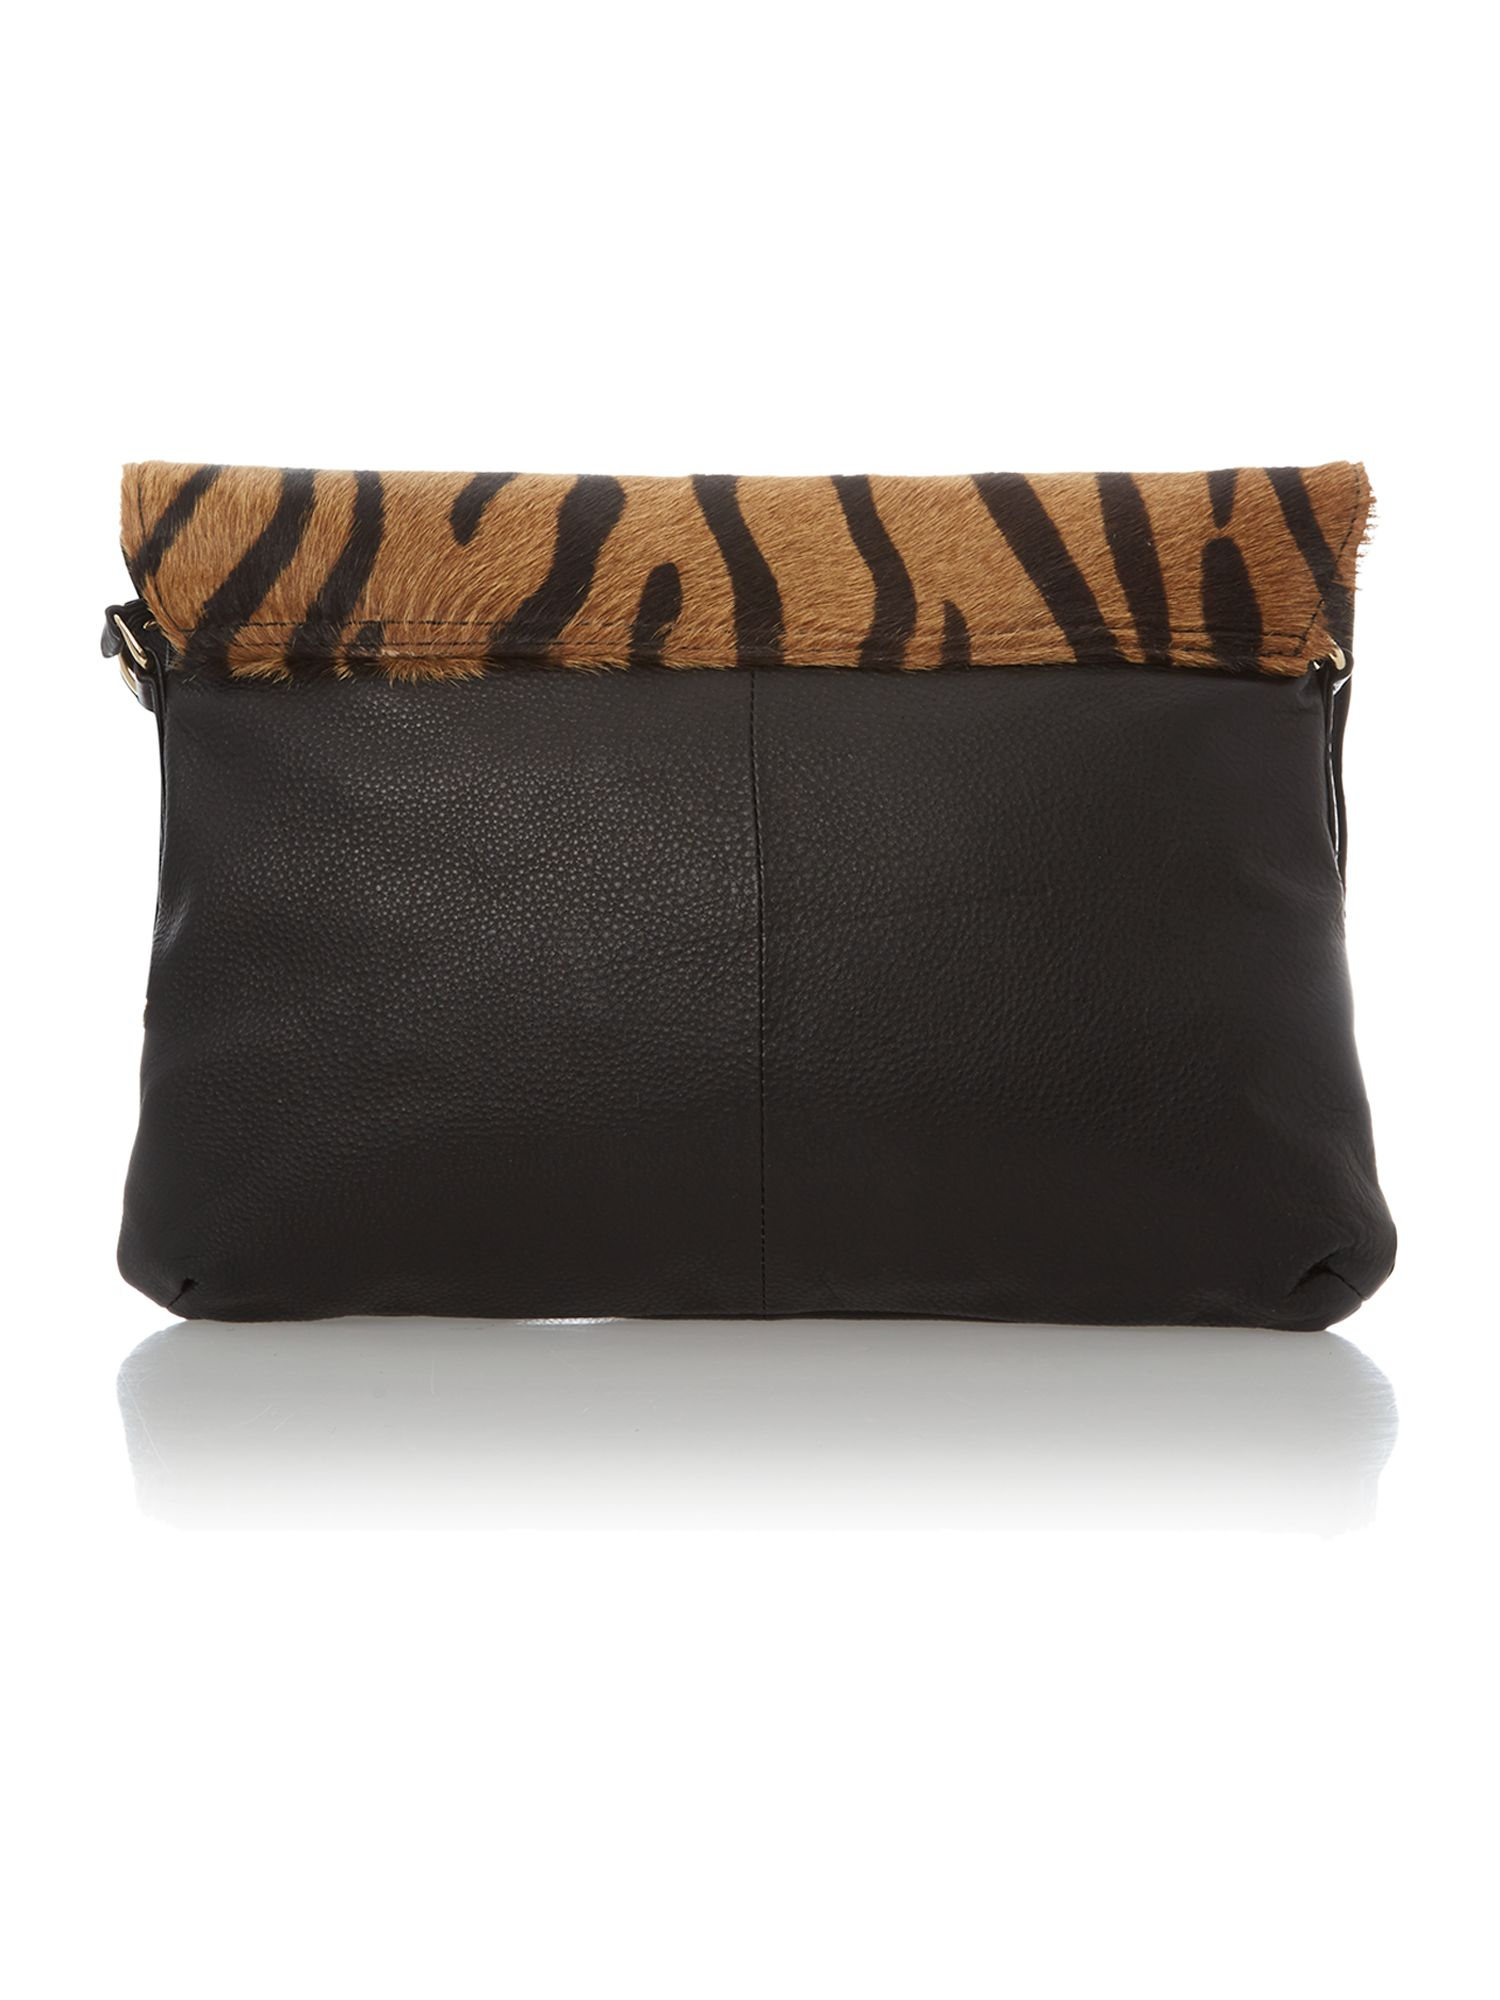 Black and tiger print leather clutch bag